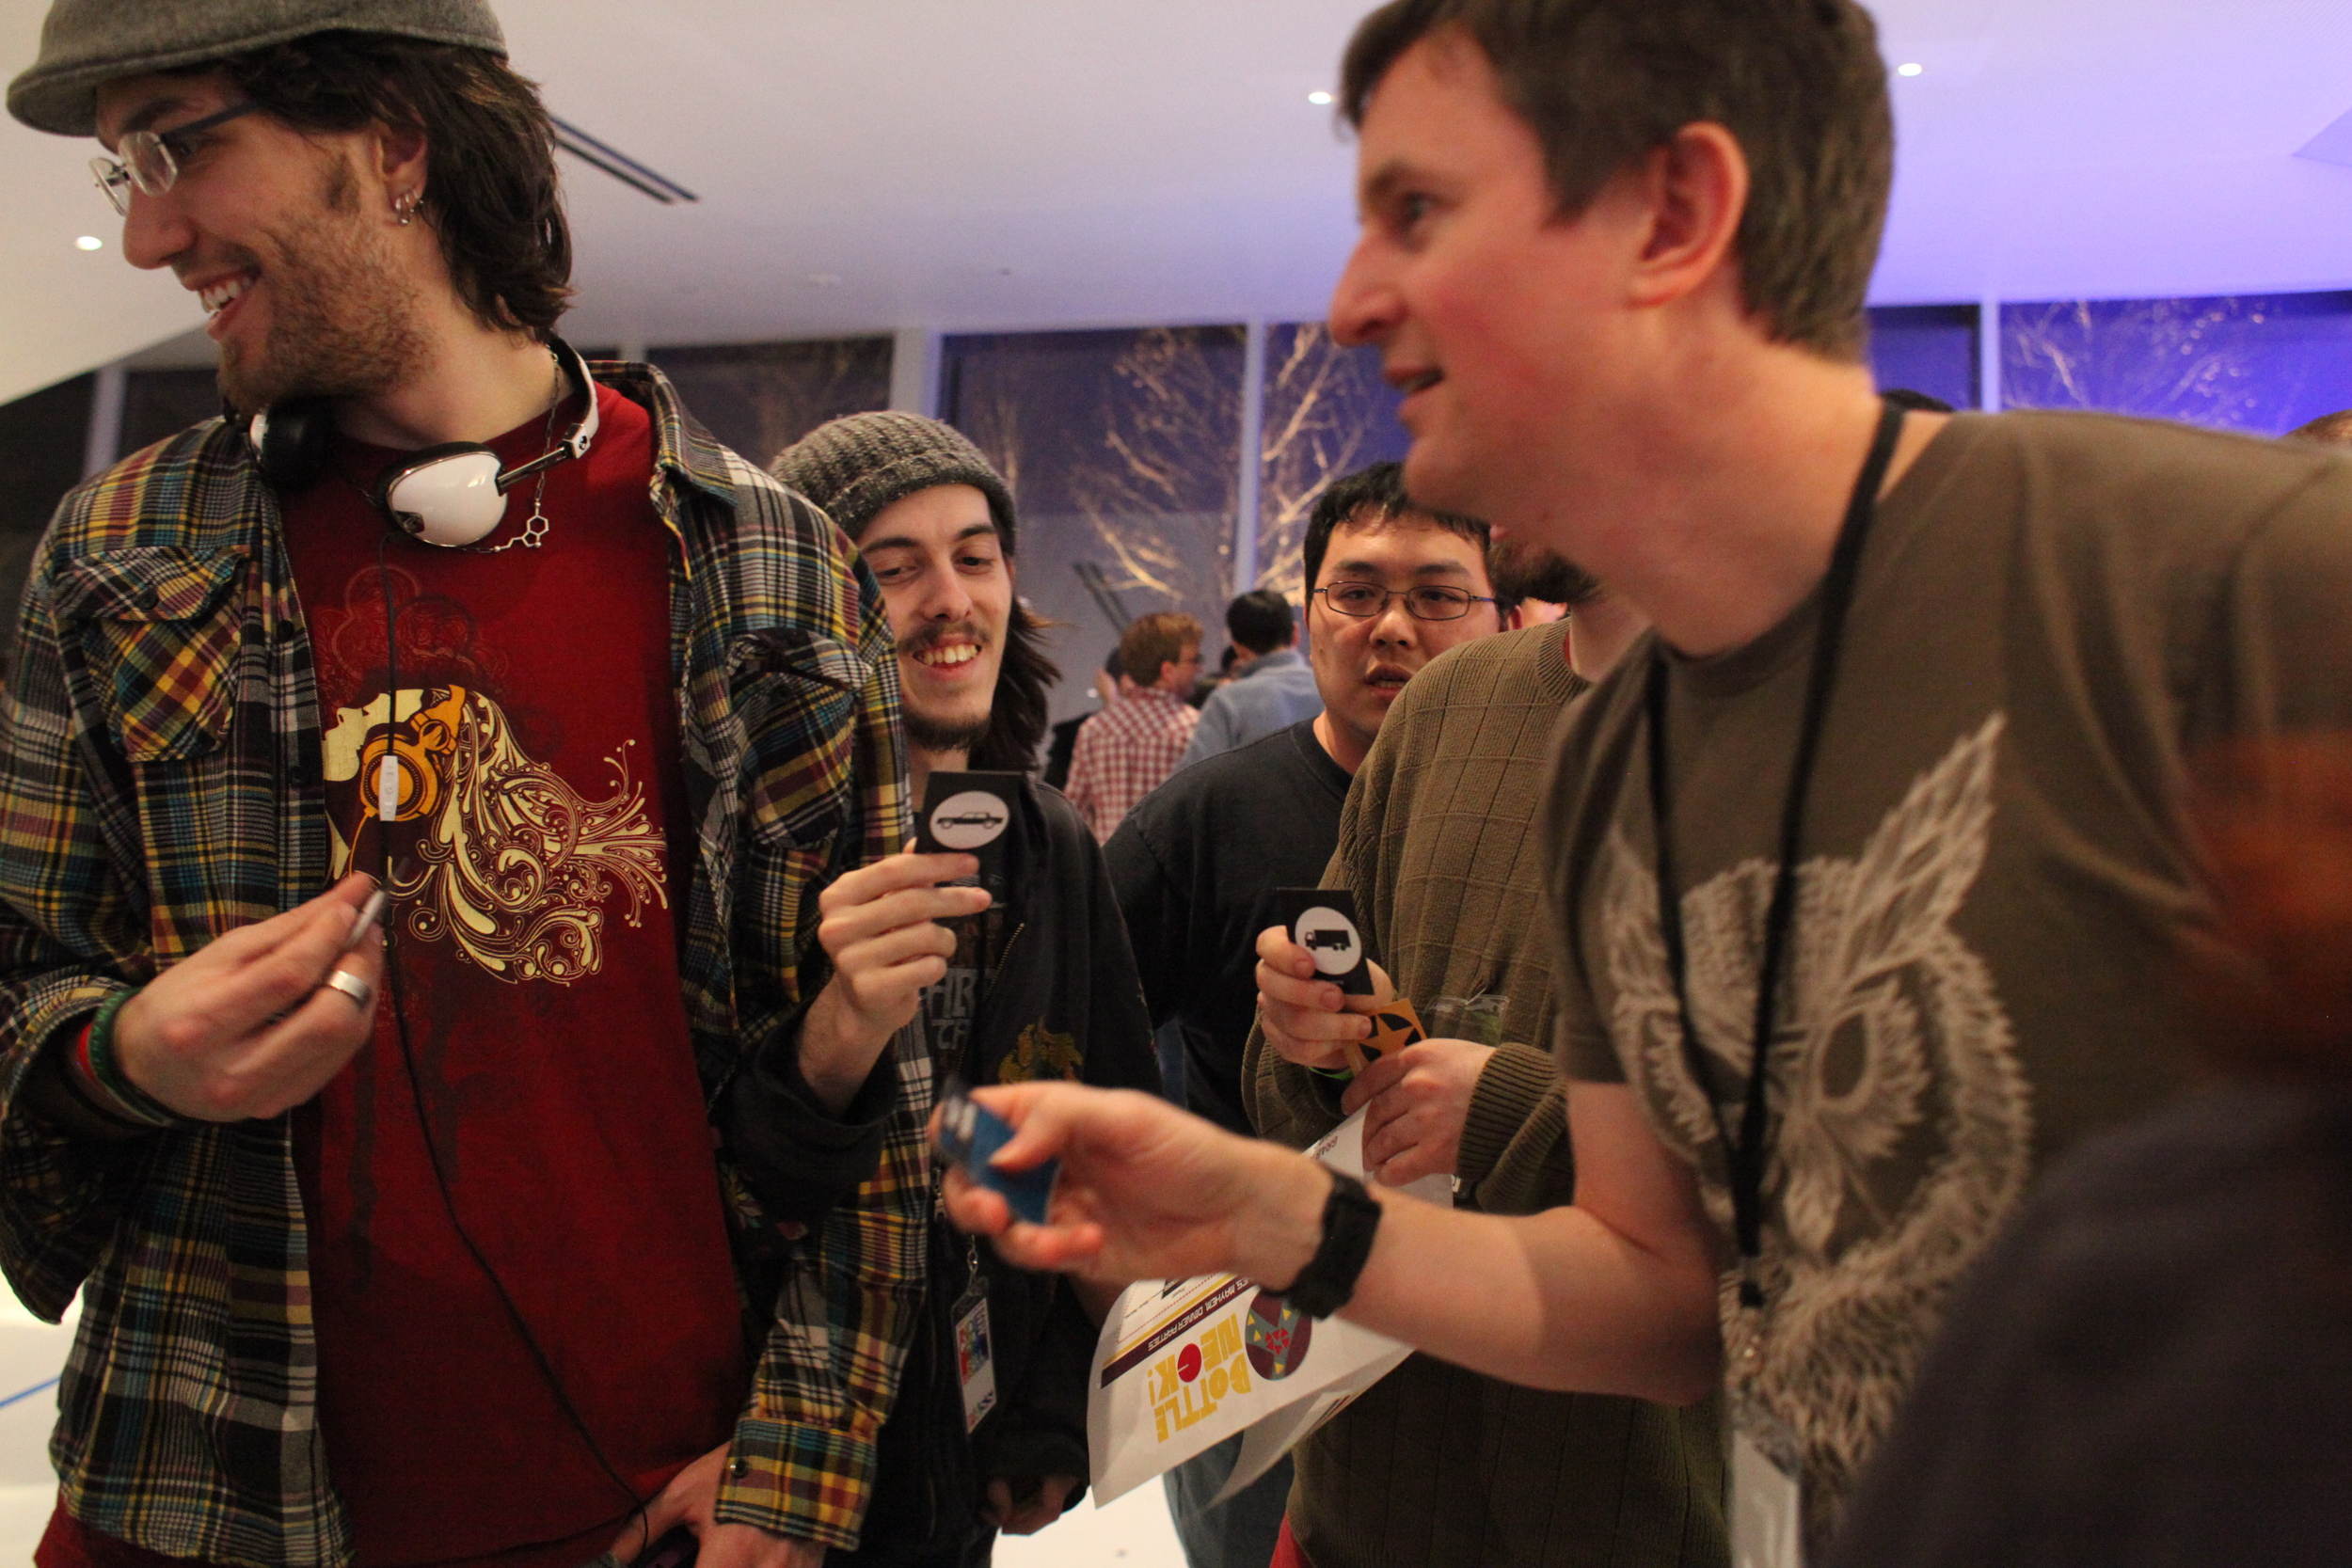 14-02-15BottleneckIndiecade197.JPG